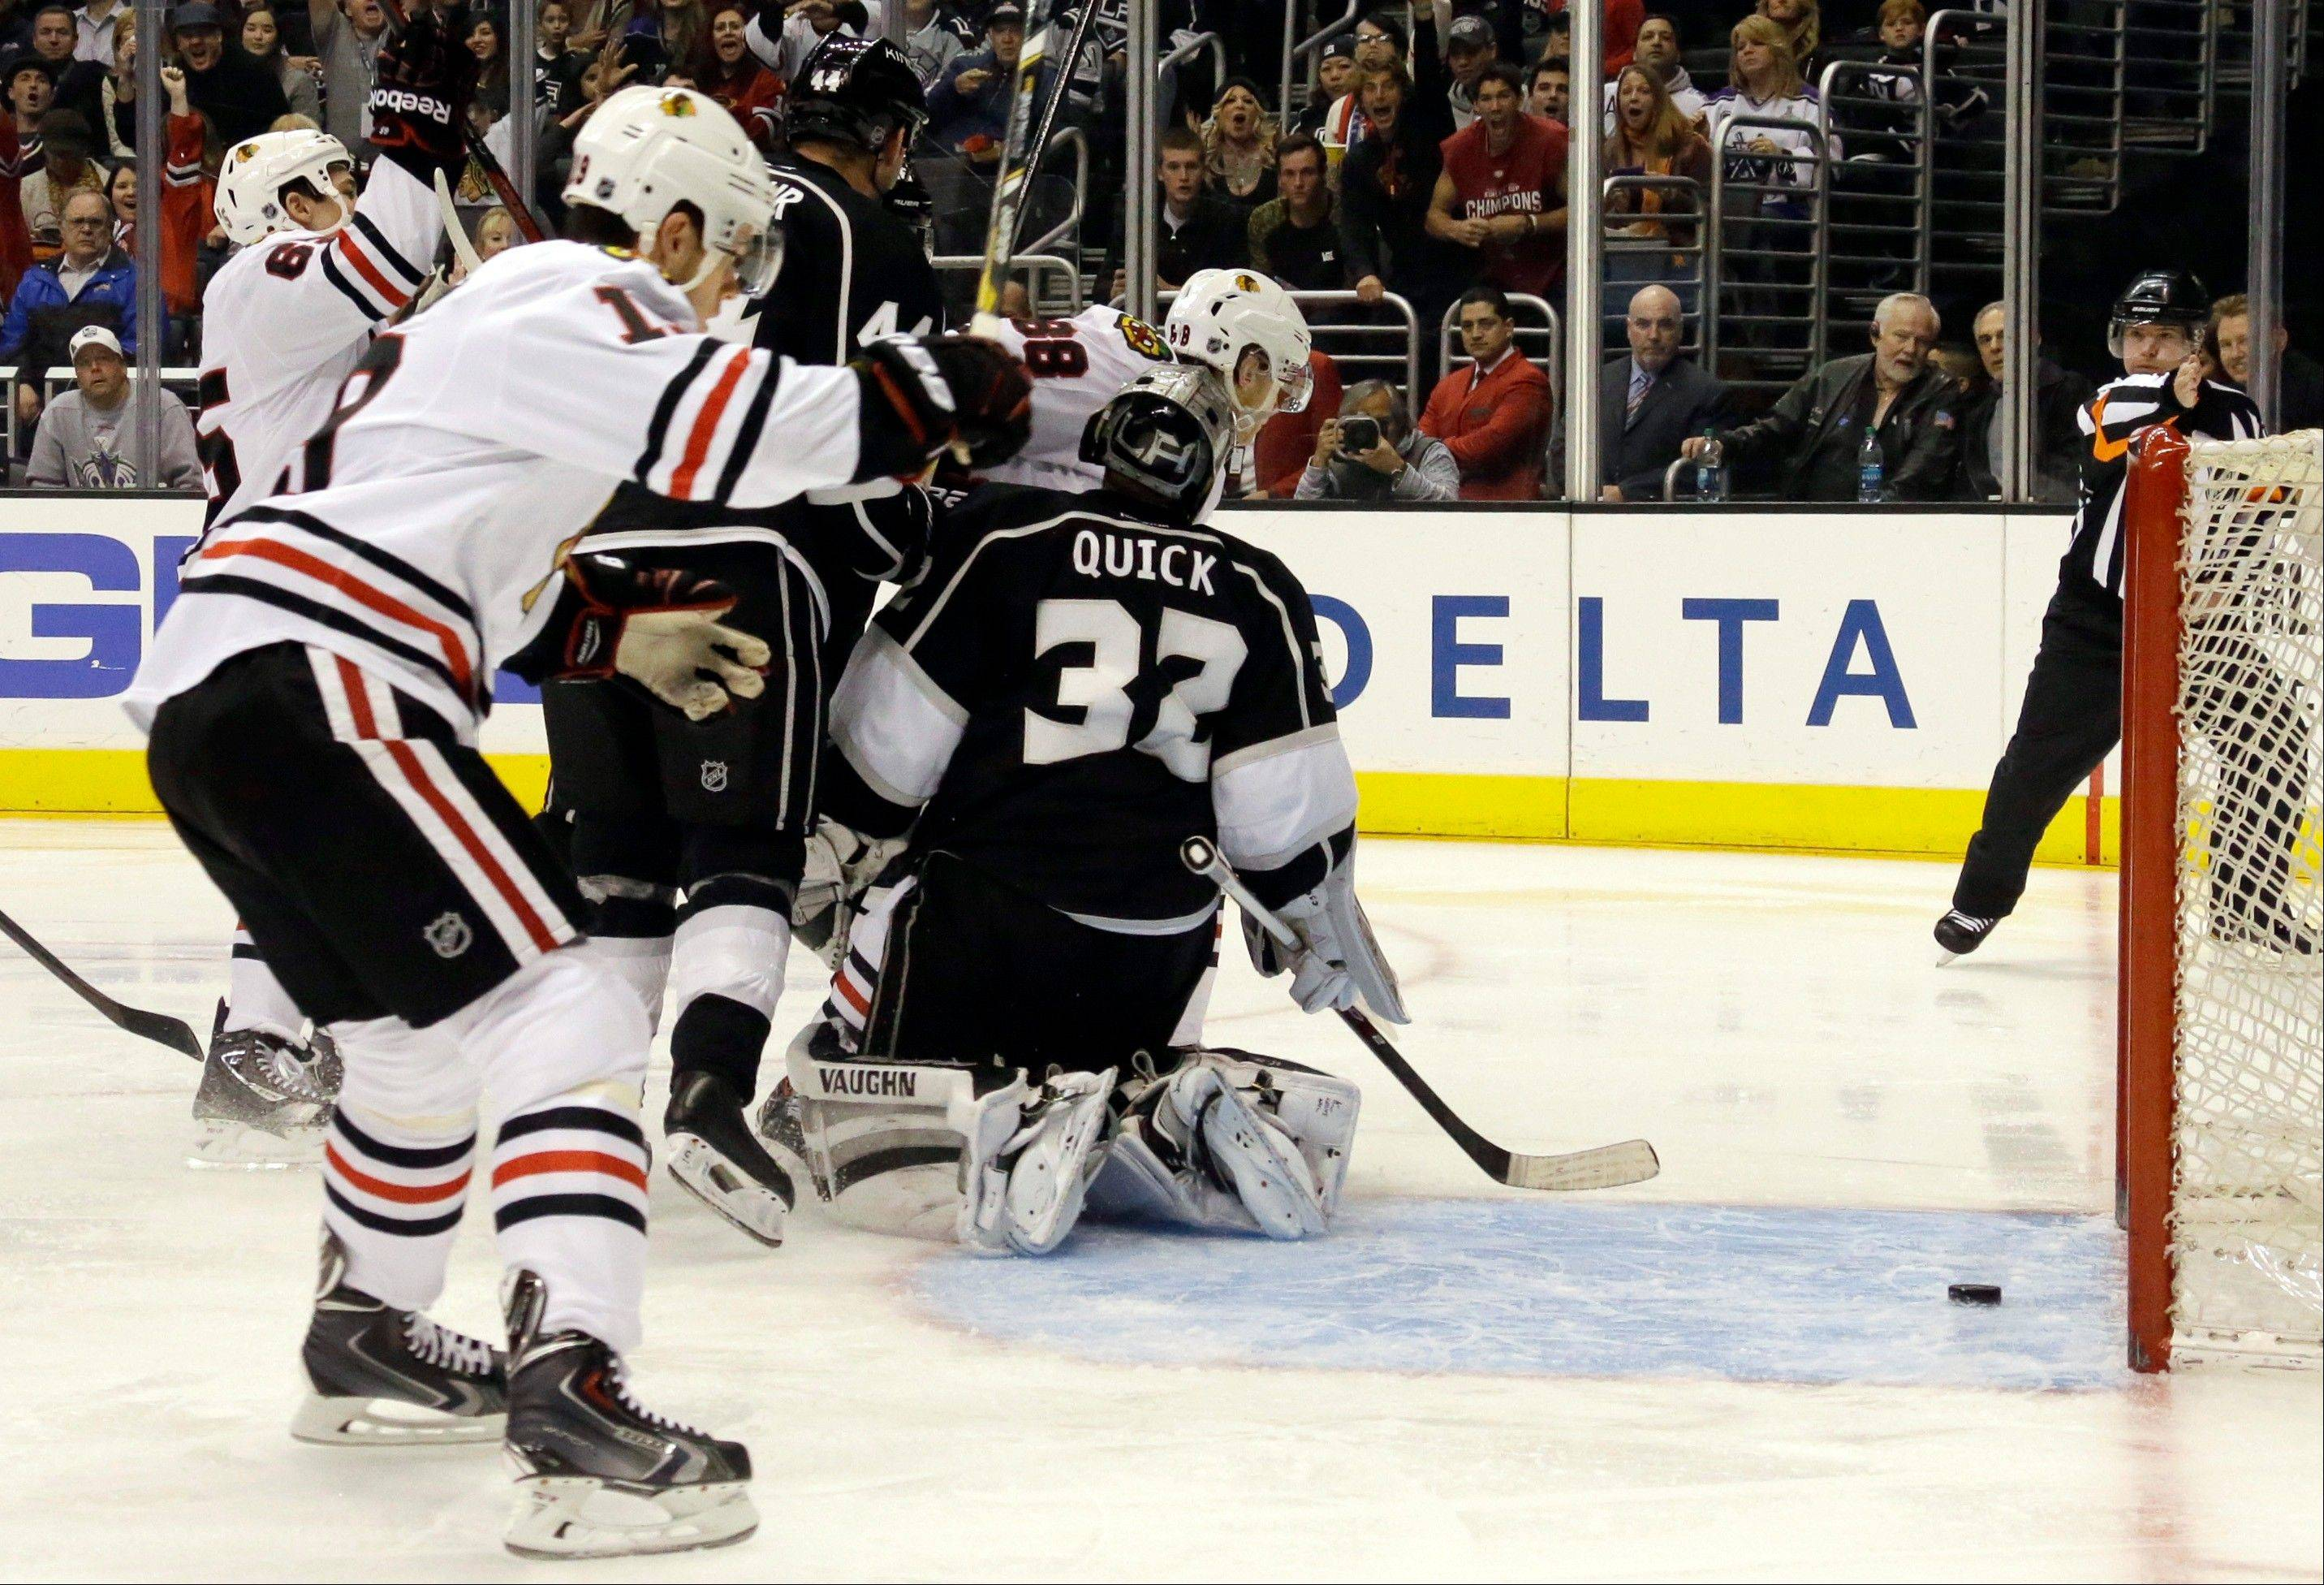 The Blackhawks' Jonathan Toews celebrates a goal by Patrick Kane, not shown, against Kings goalie Jonathan Quick in the first period Monday night.